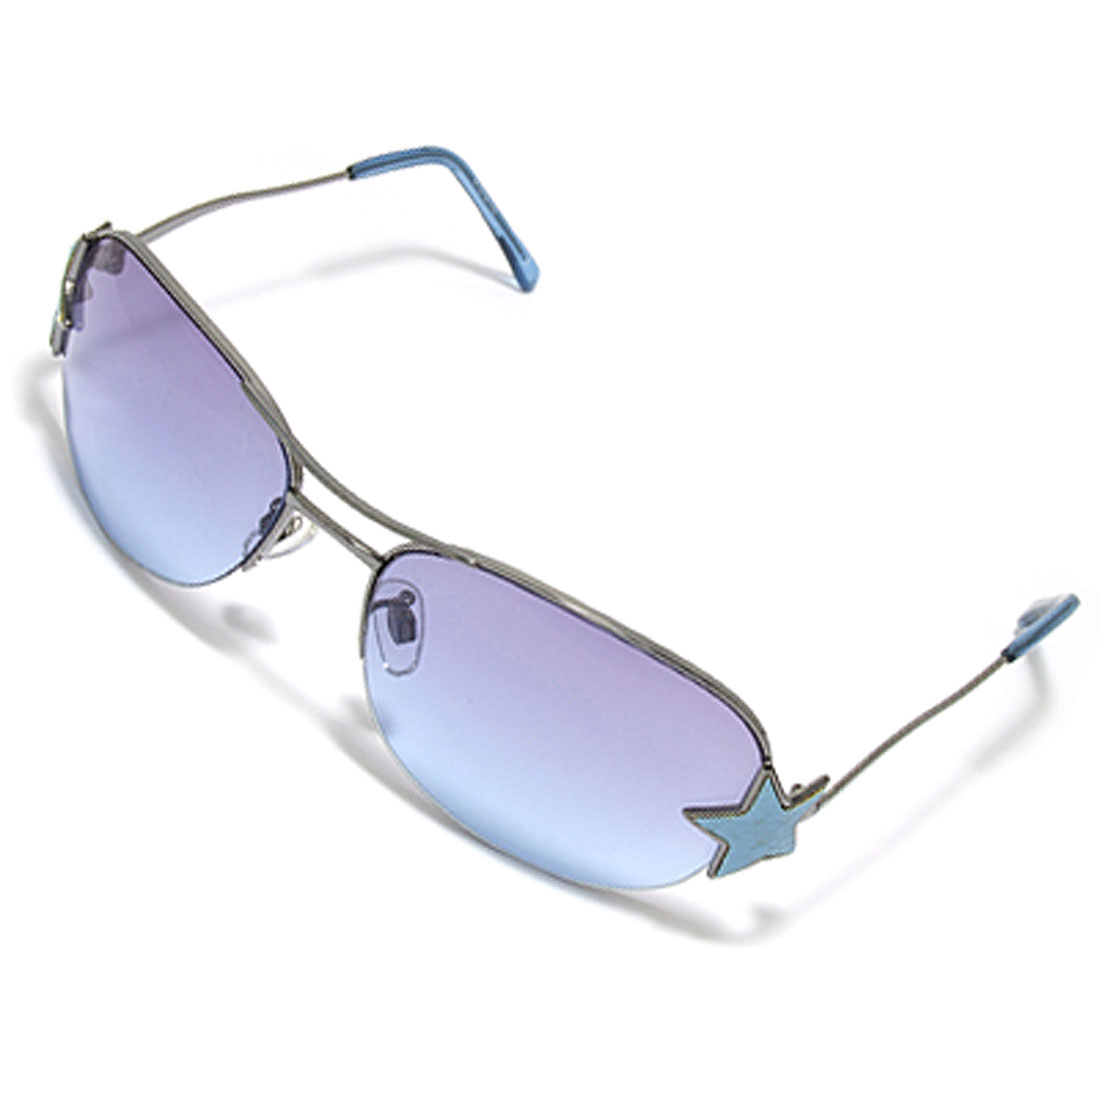 Purple Blue Lens & Metal Frame of Women's Sport Sunglasses